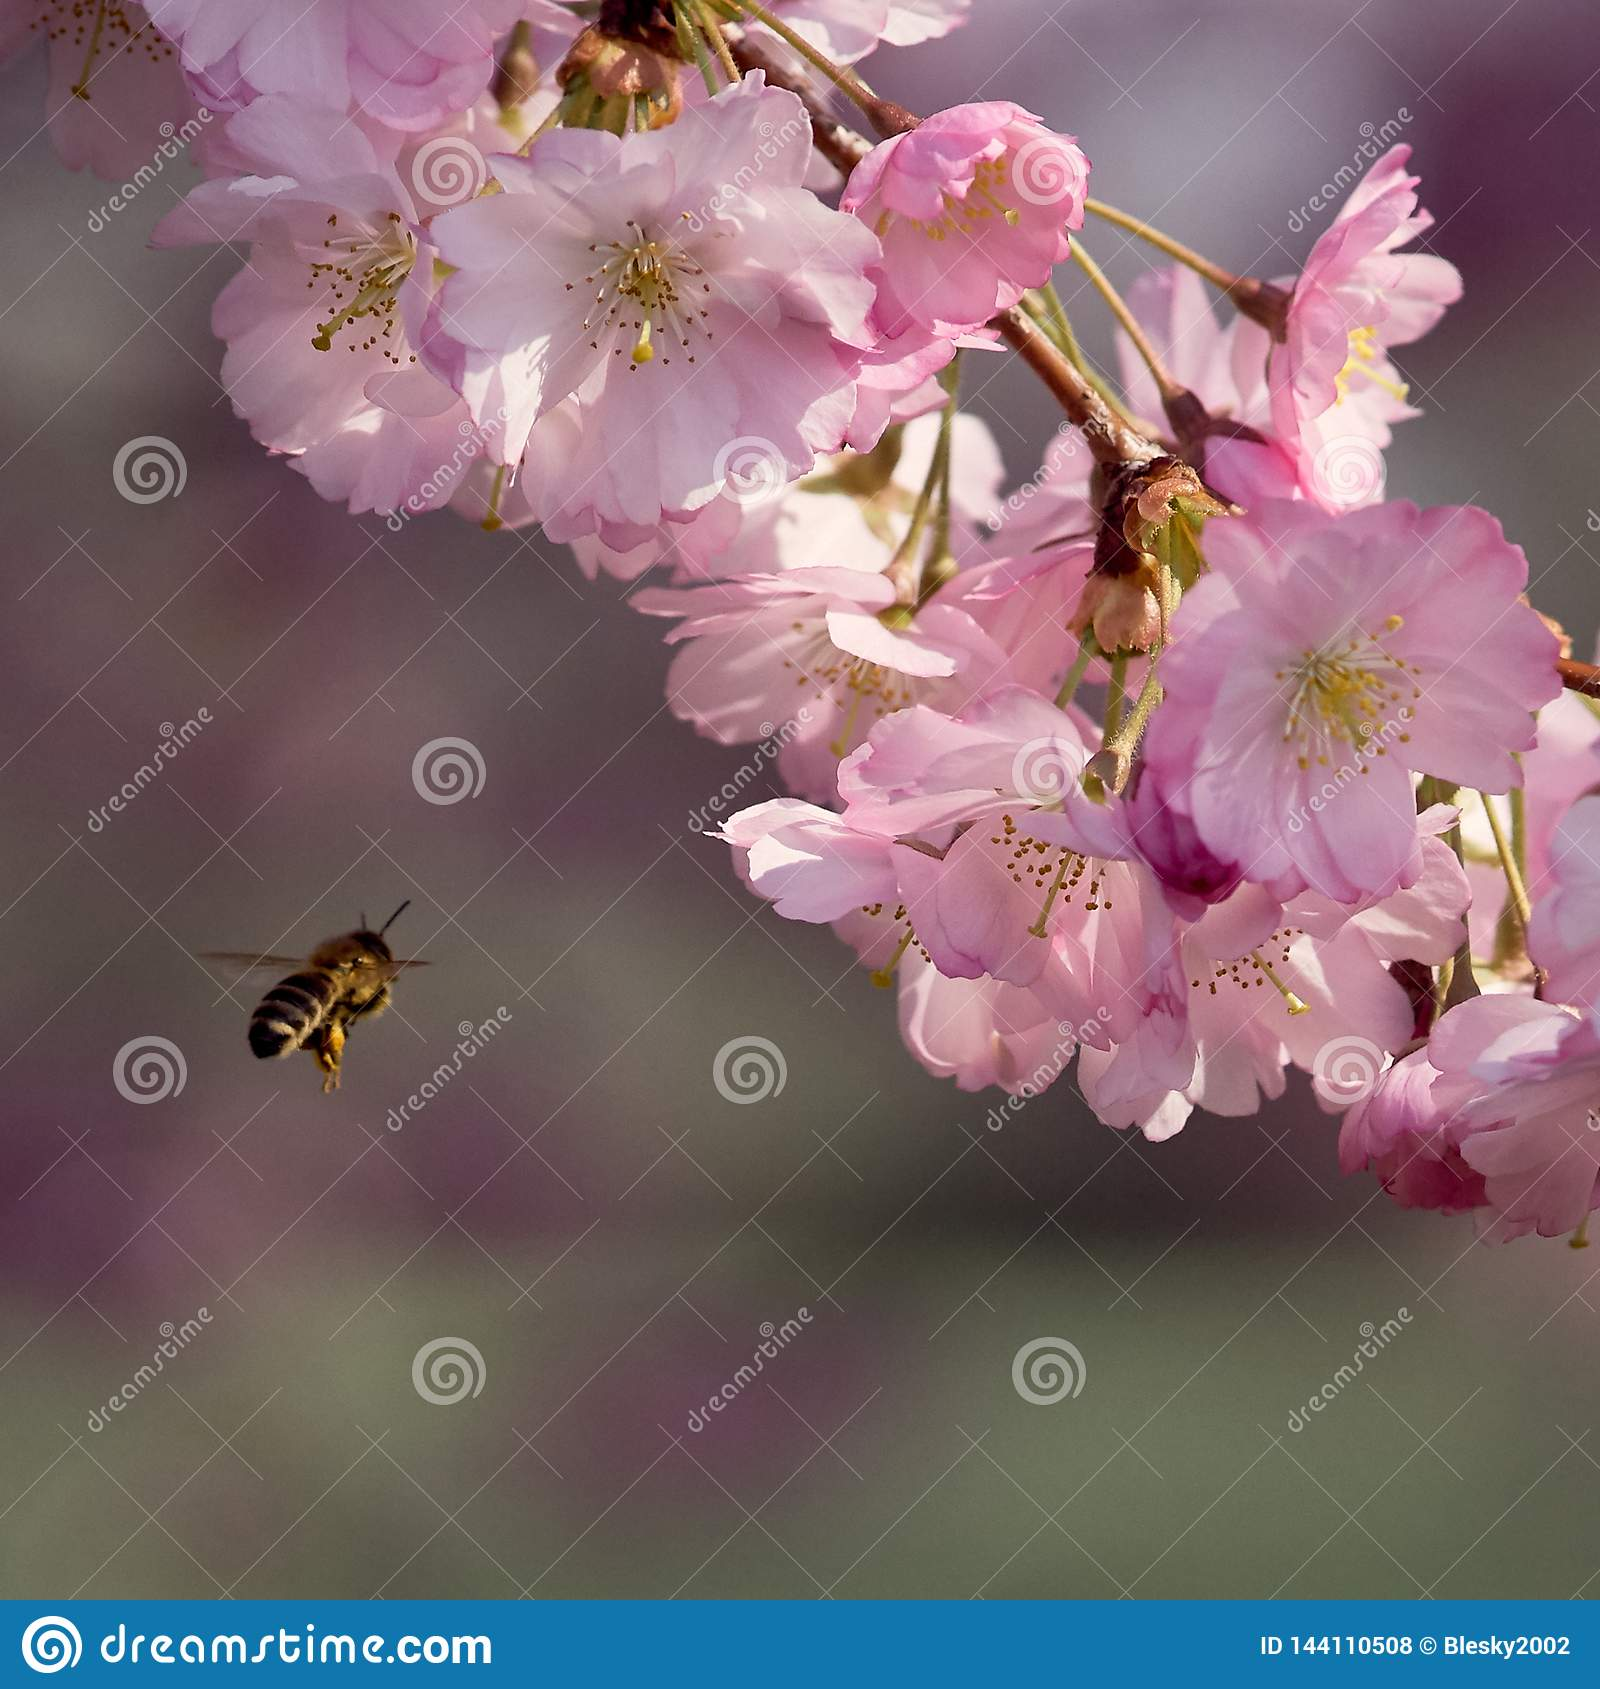 A bee approaching sakura flowers in blossom